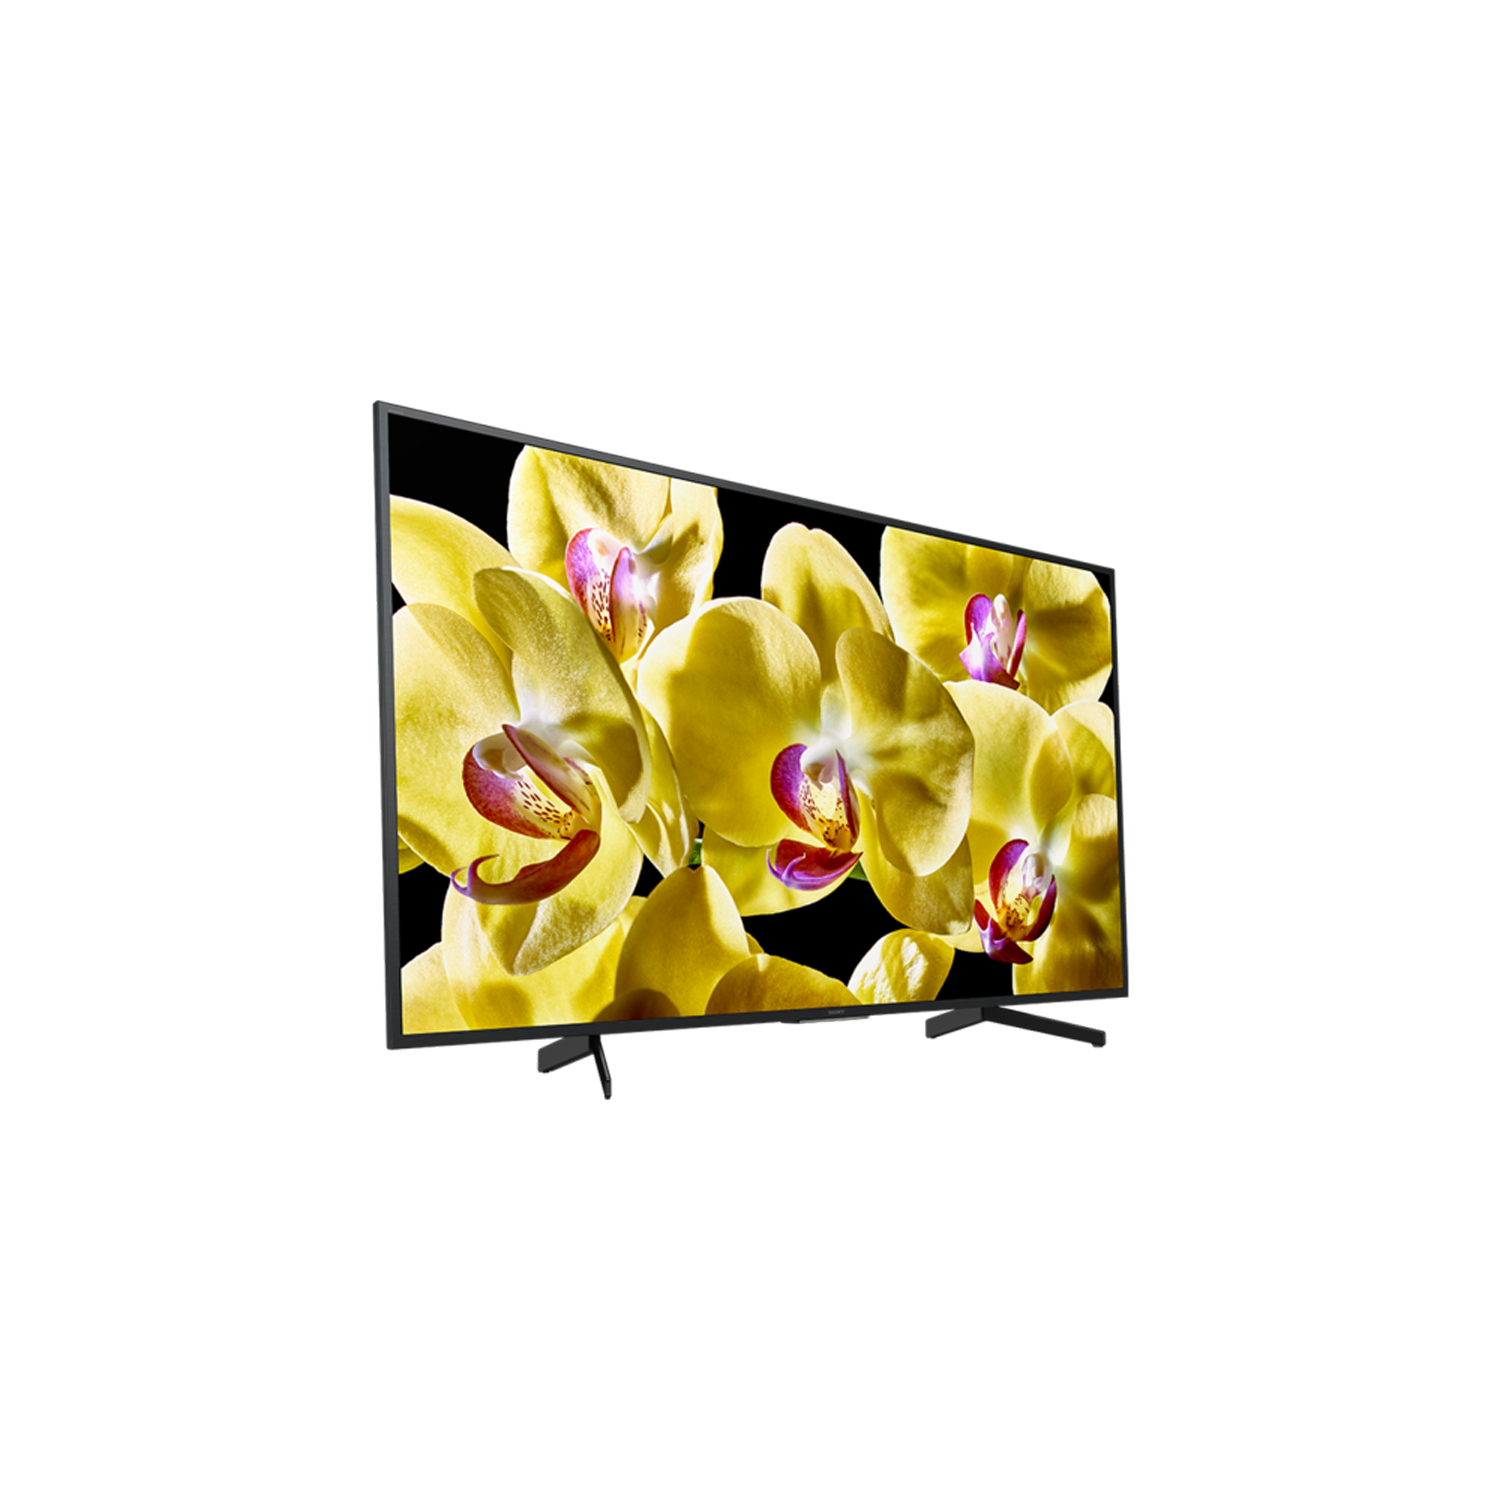 """75"""" X80G LED 4K Ultra HD High Dynamic Range Smart Android TV, , product-image"""